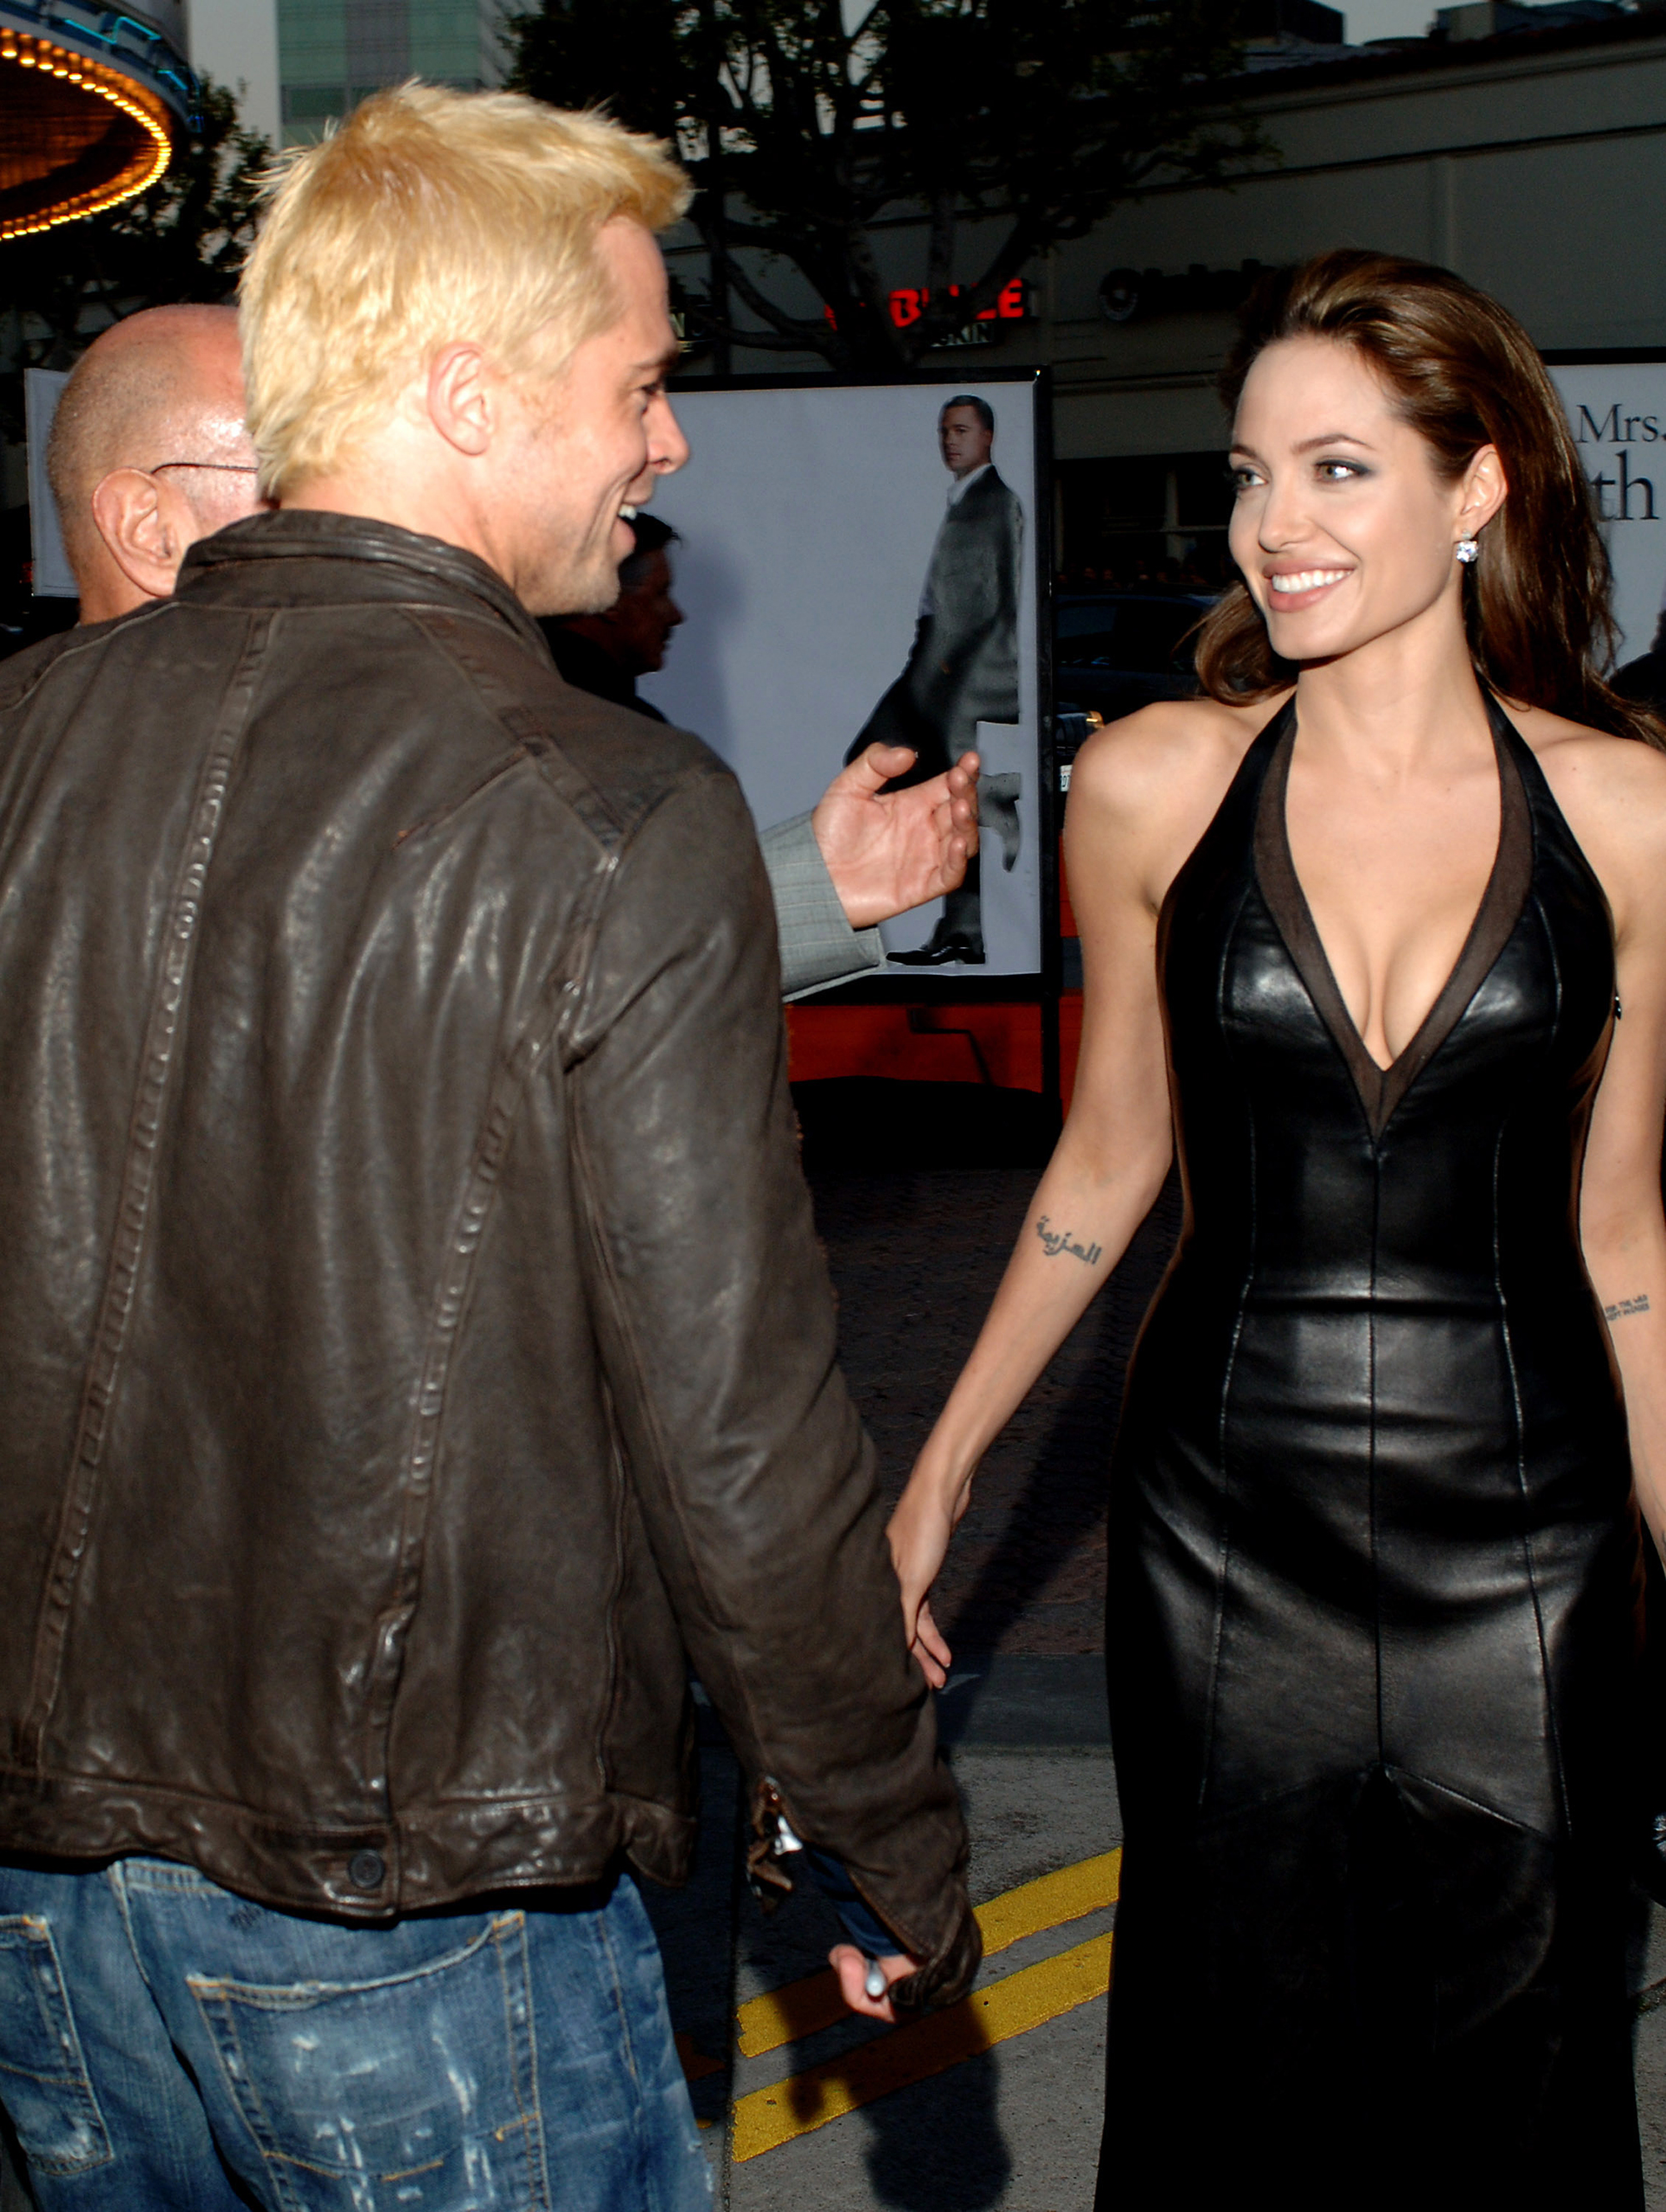 Brad Pitt and Angelina Jolie at the Mr. And Mrs. Smith Los Angeles premiere, on June 7, 2005.